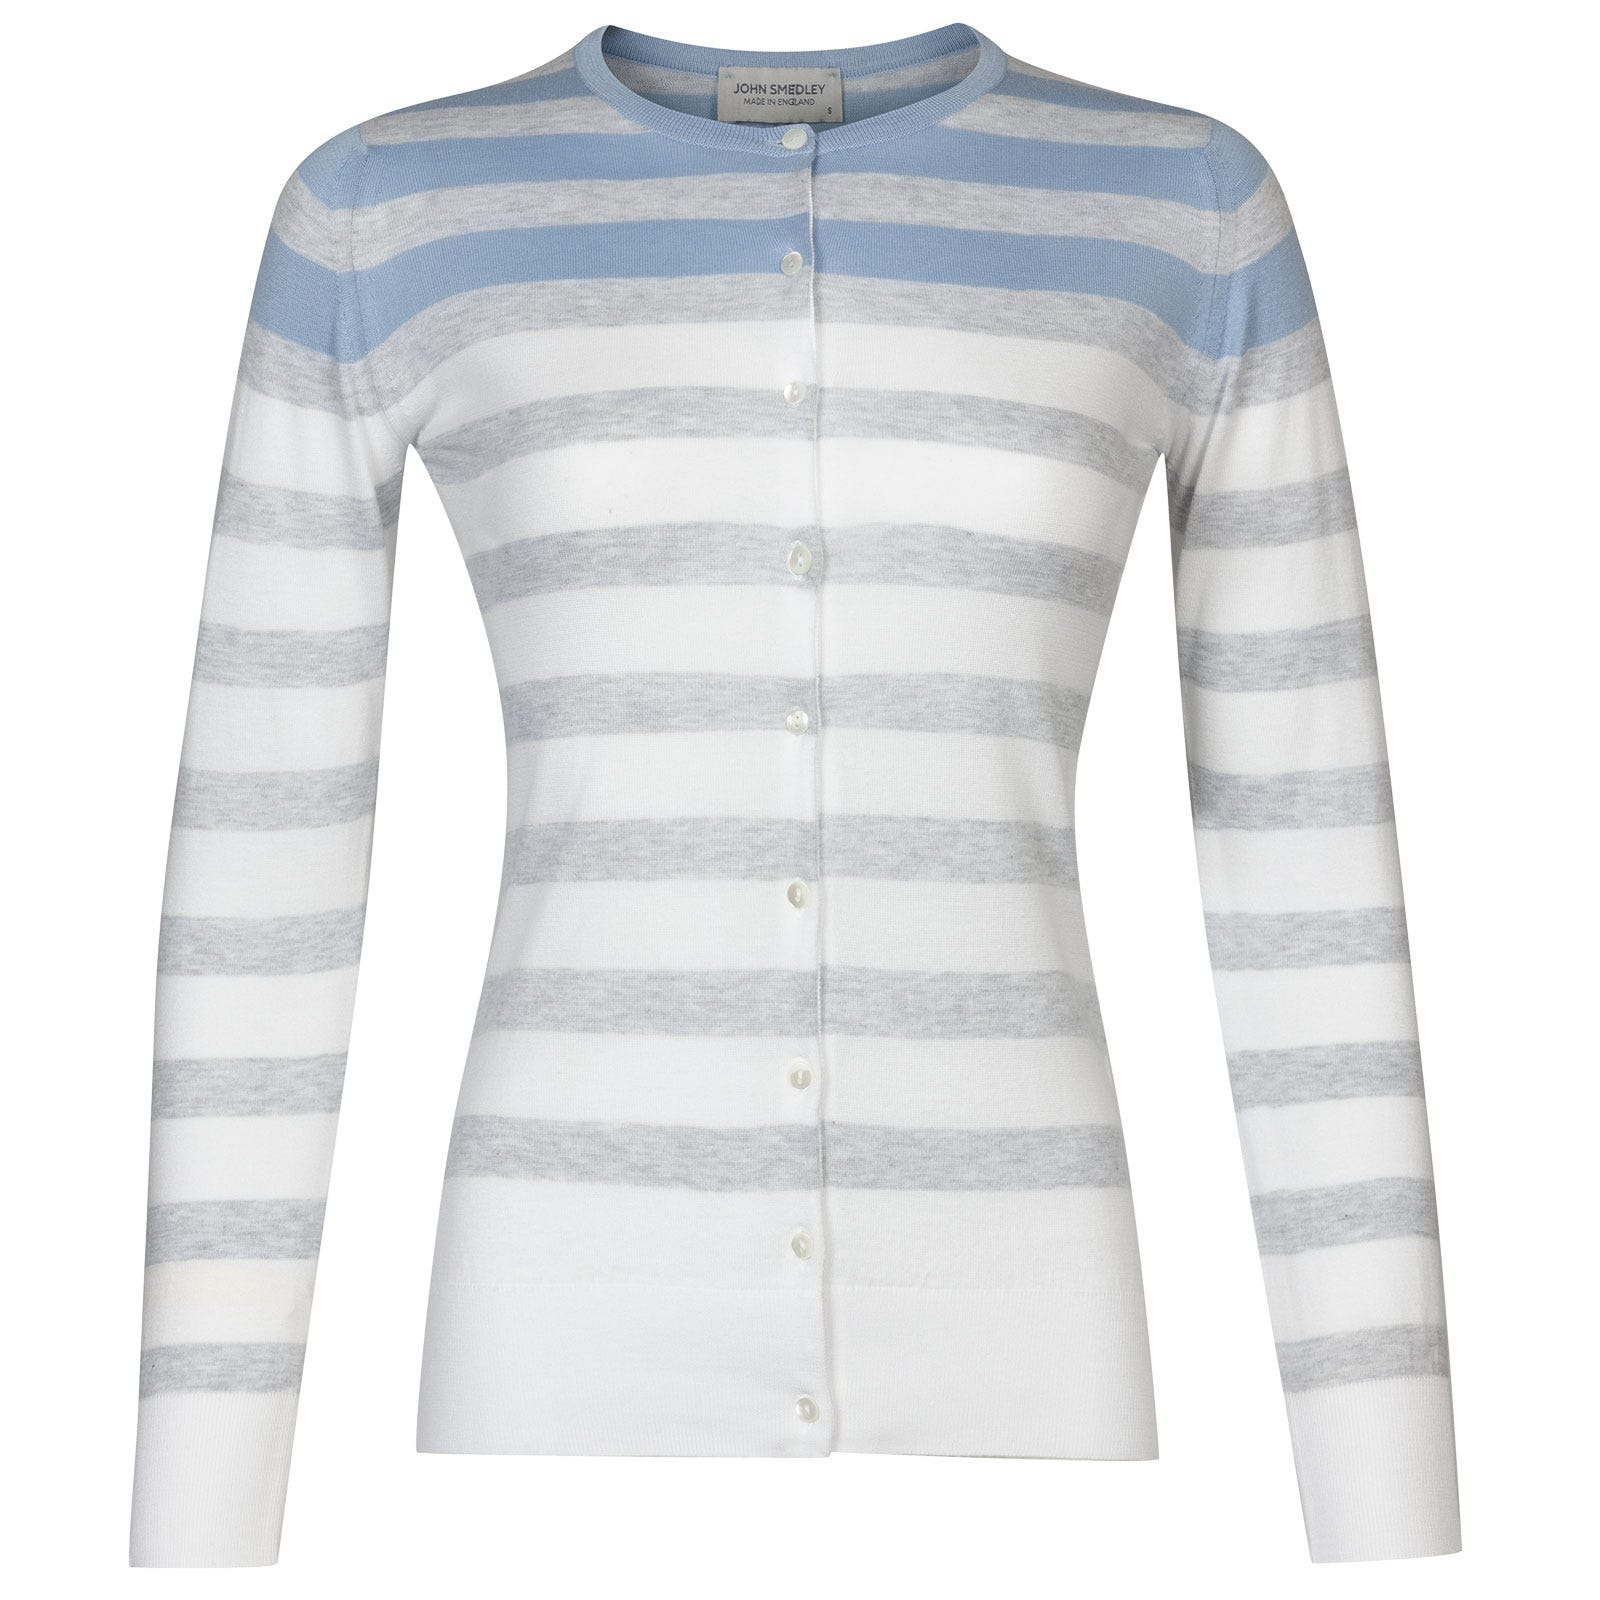 John Smedley Joyner in White/Feather Grey-M